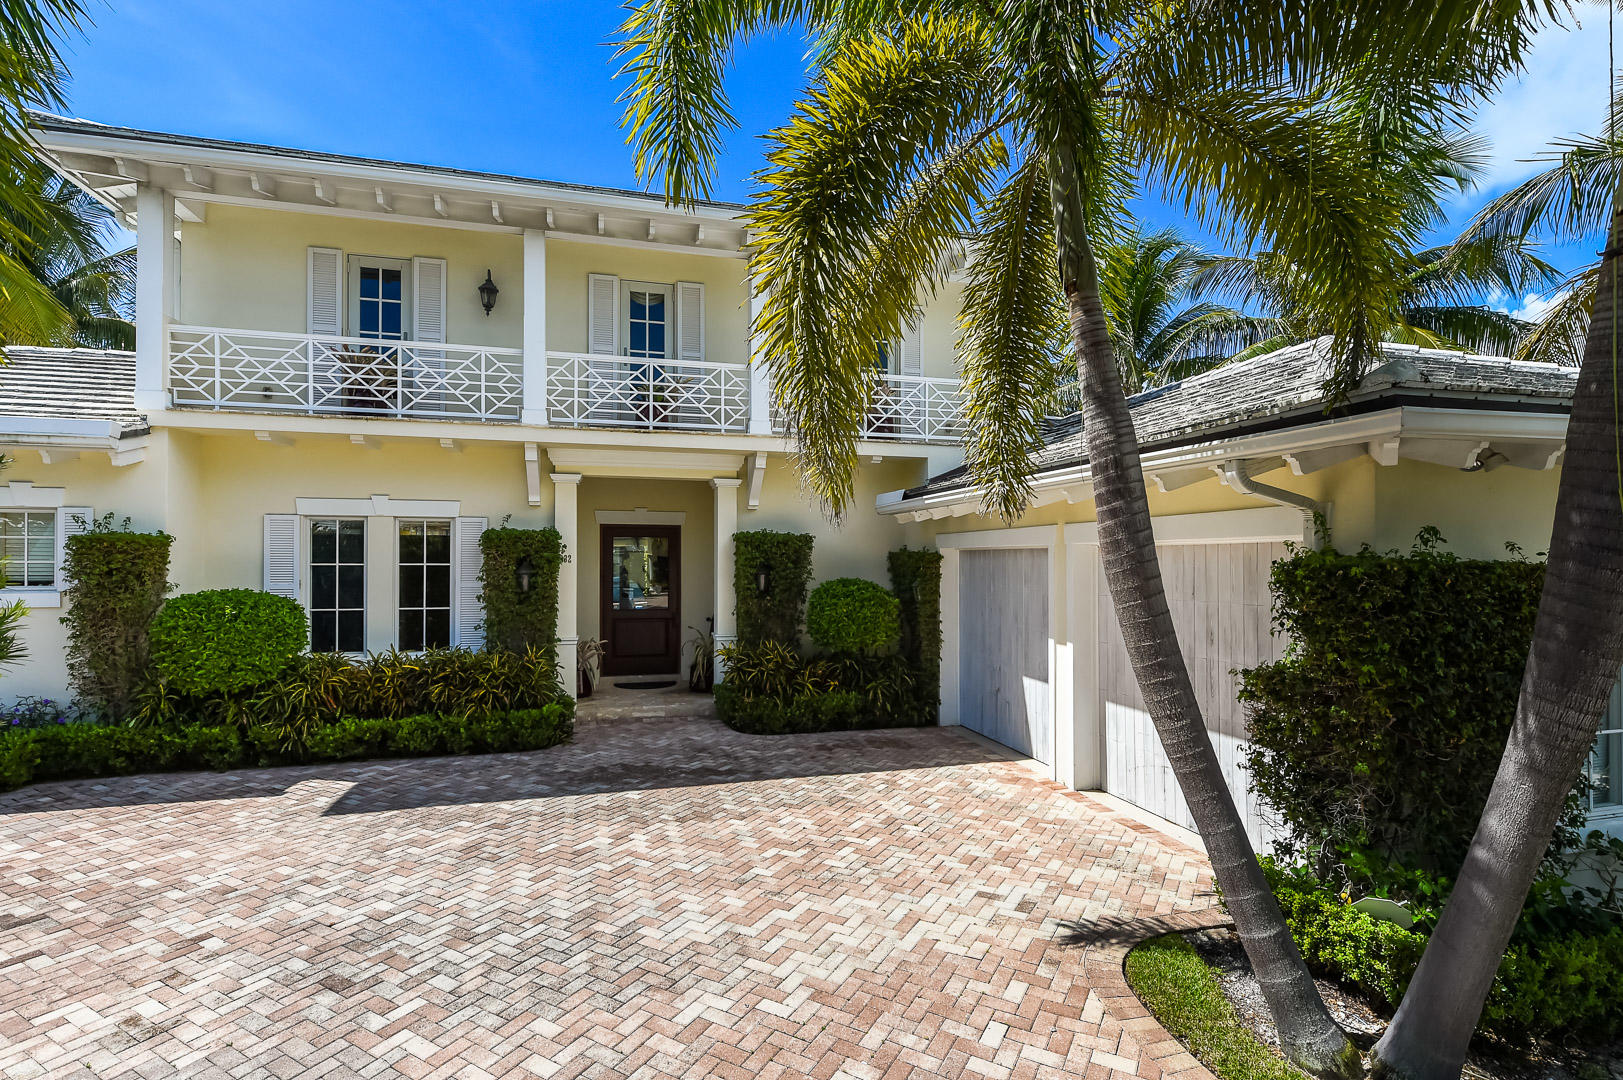 232 Tradewind Drive, Palm Beach, Florida 33480, 5 Bedrooms Bedrooms, ,6.1 BathroomsBathrooms,Single Family,For Rent,Tradewind,RX-10459470